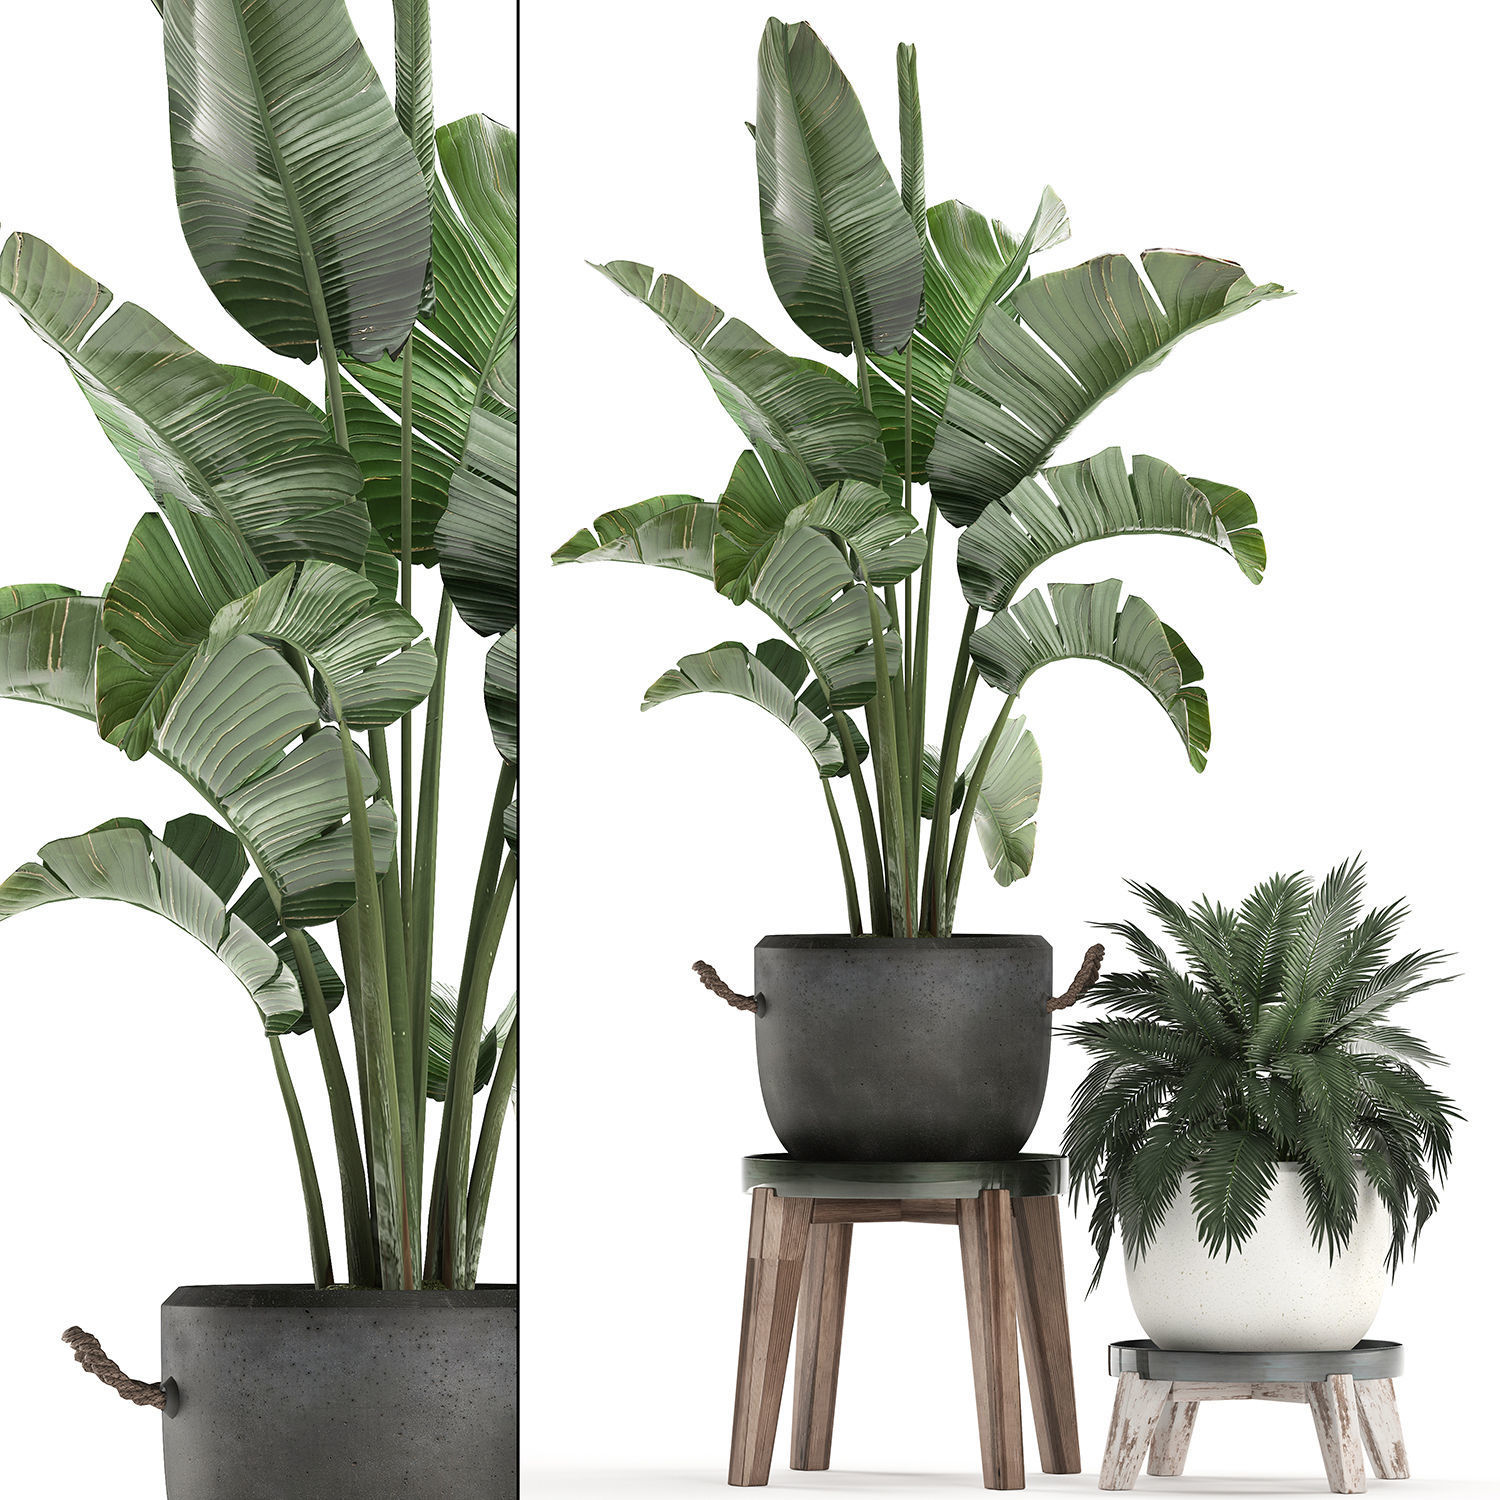 3d Model Decorative Plants In Flower Pots For The Interior